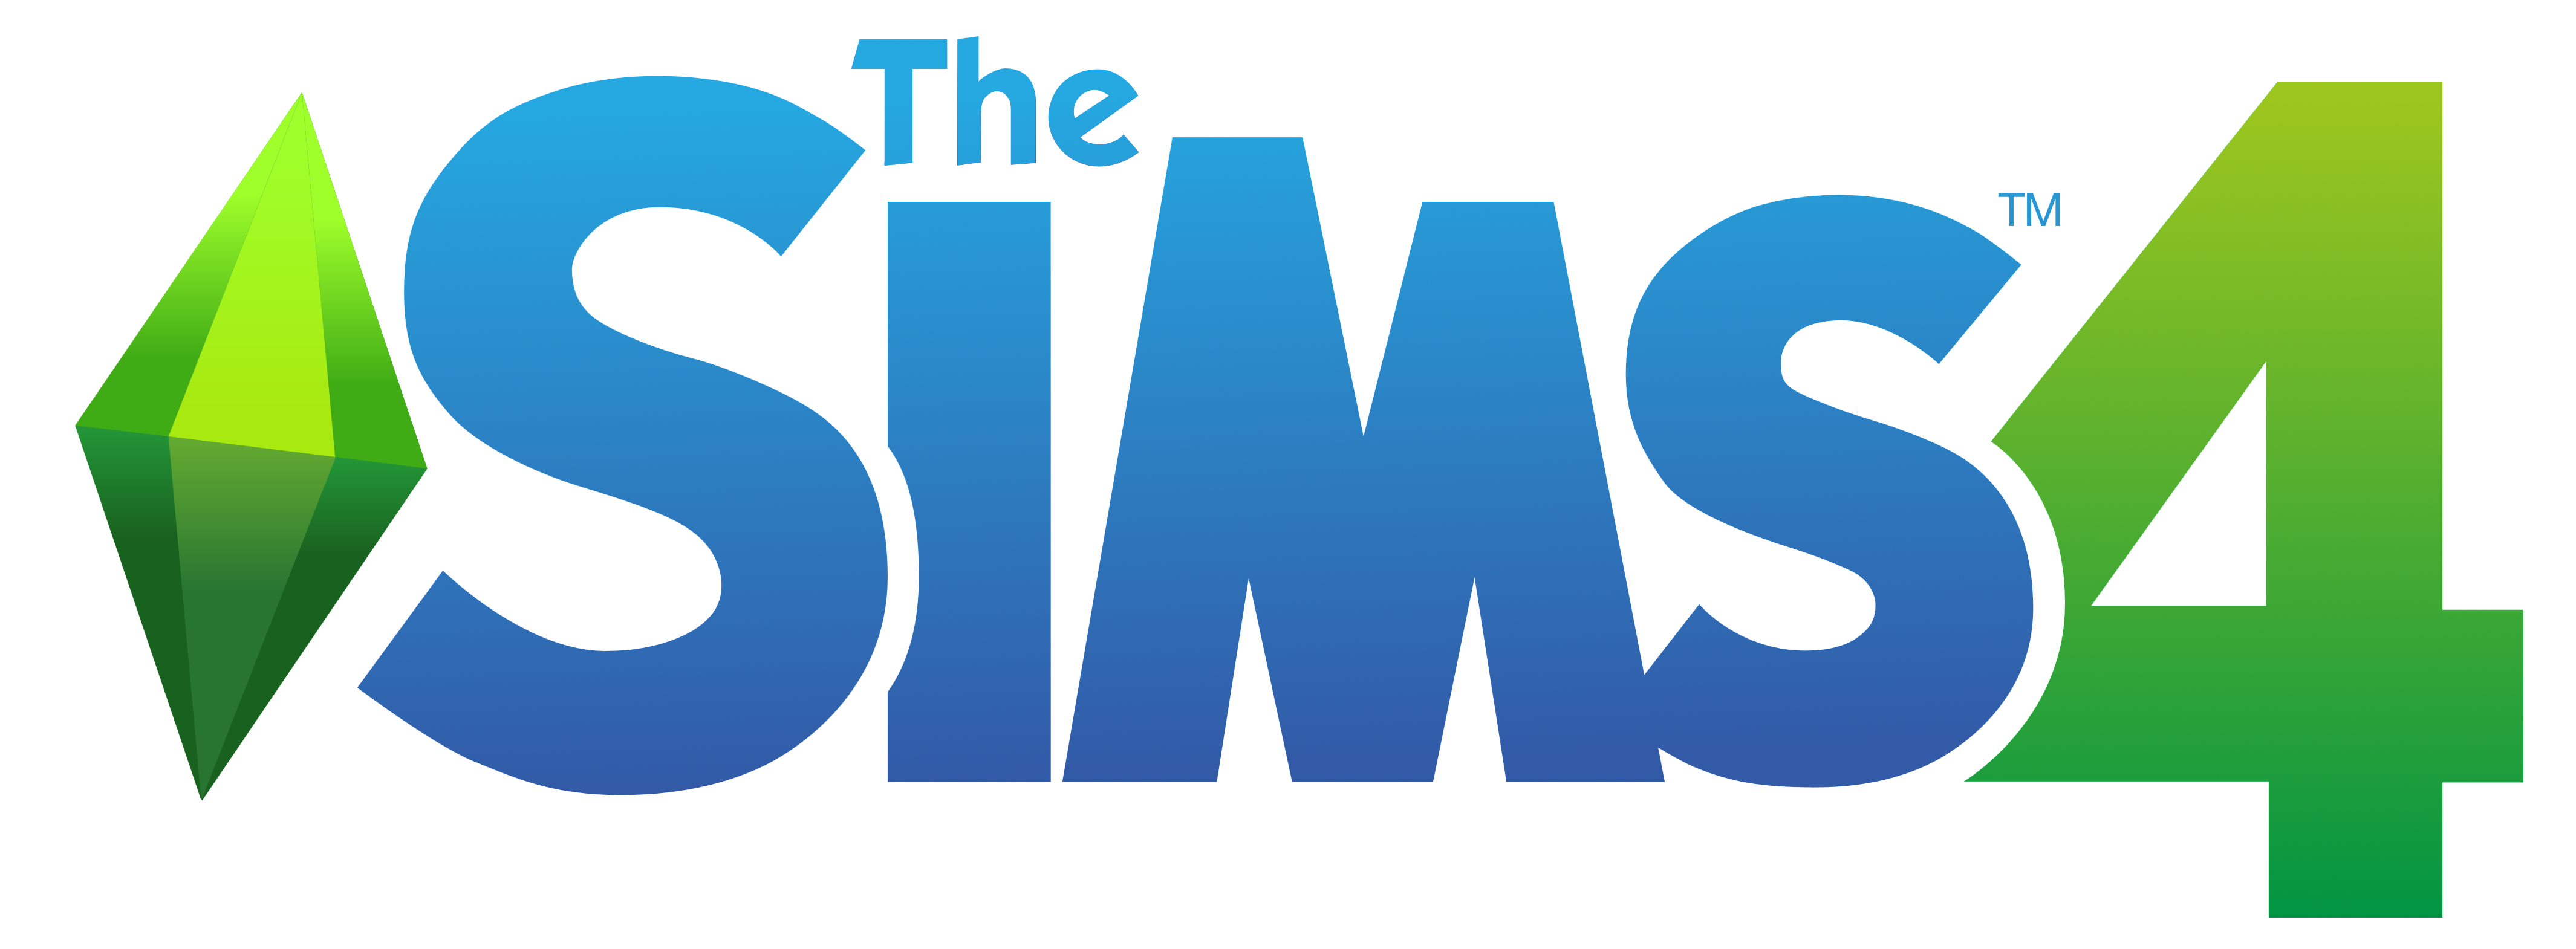 The Sims 4 Logo PNG Image